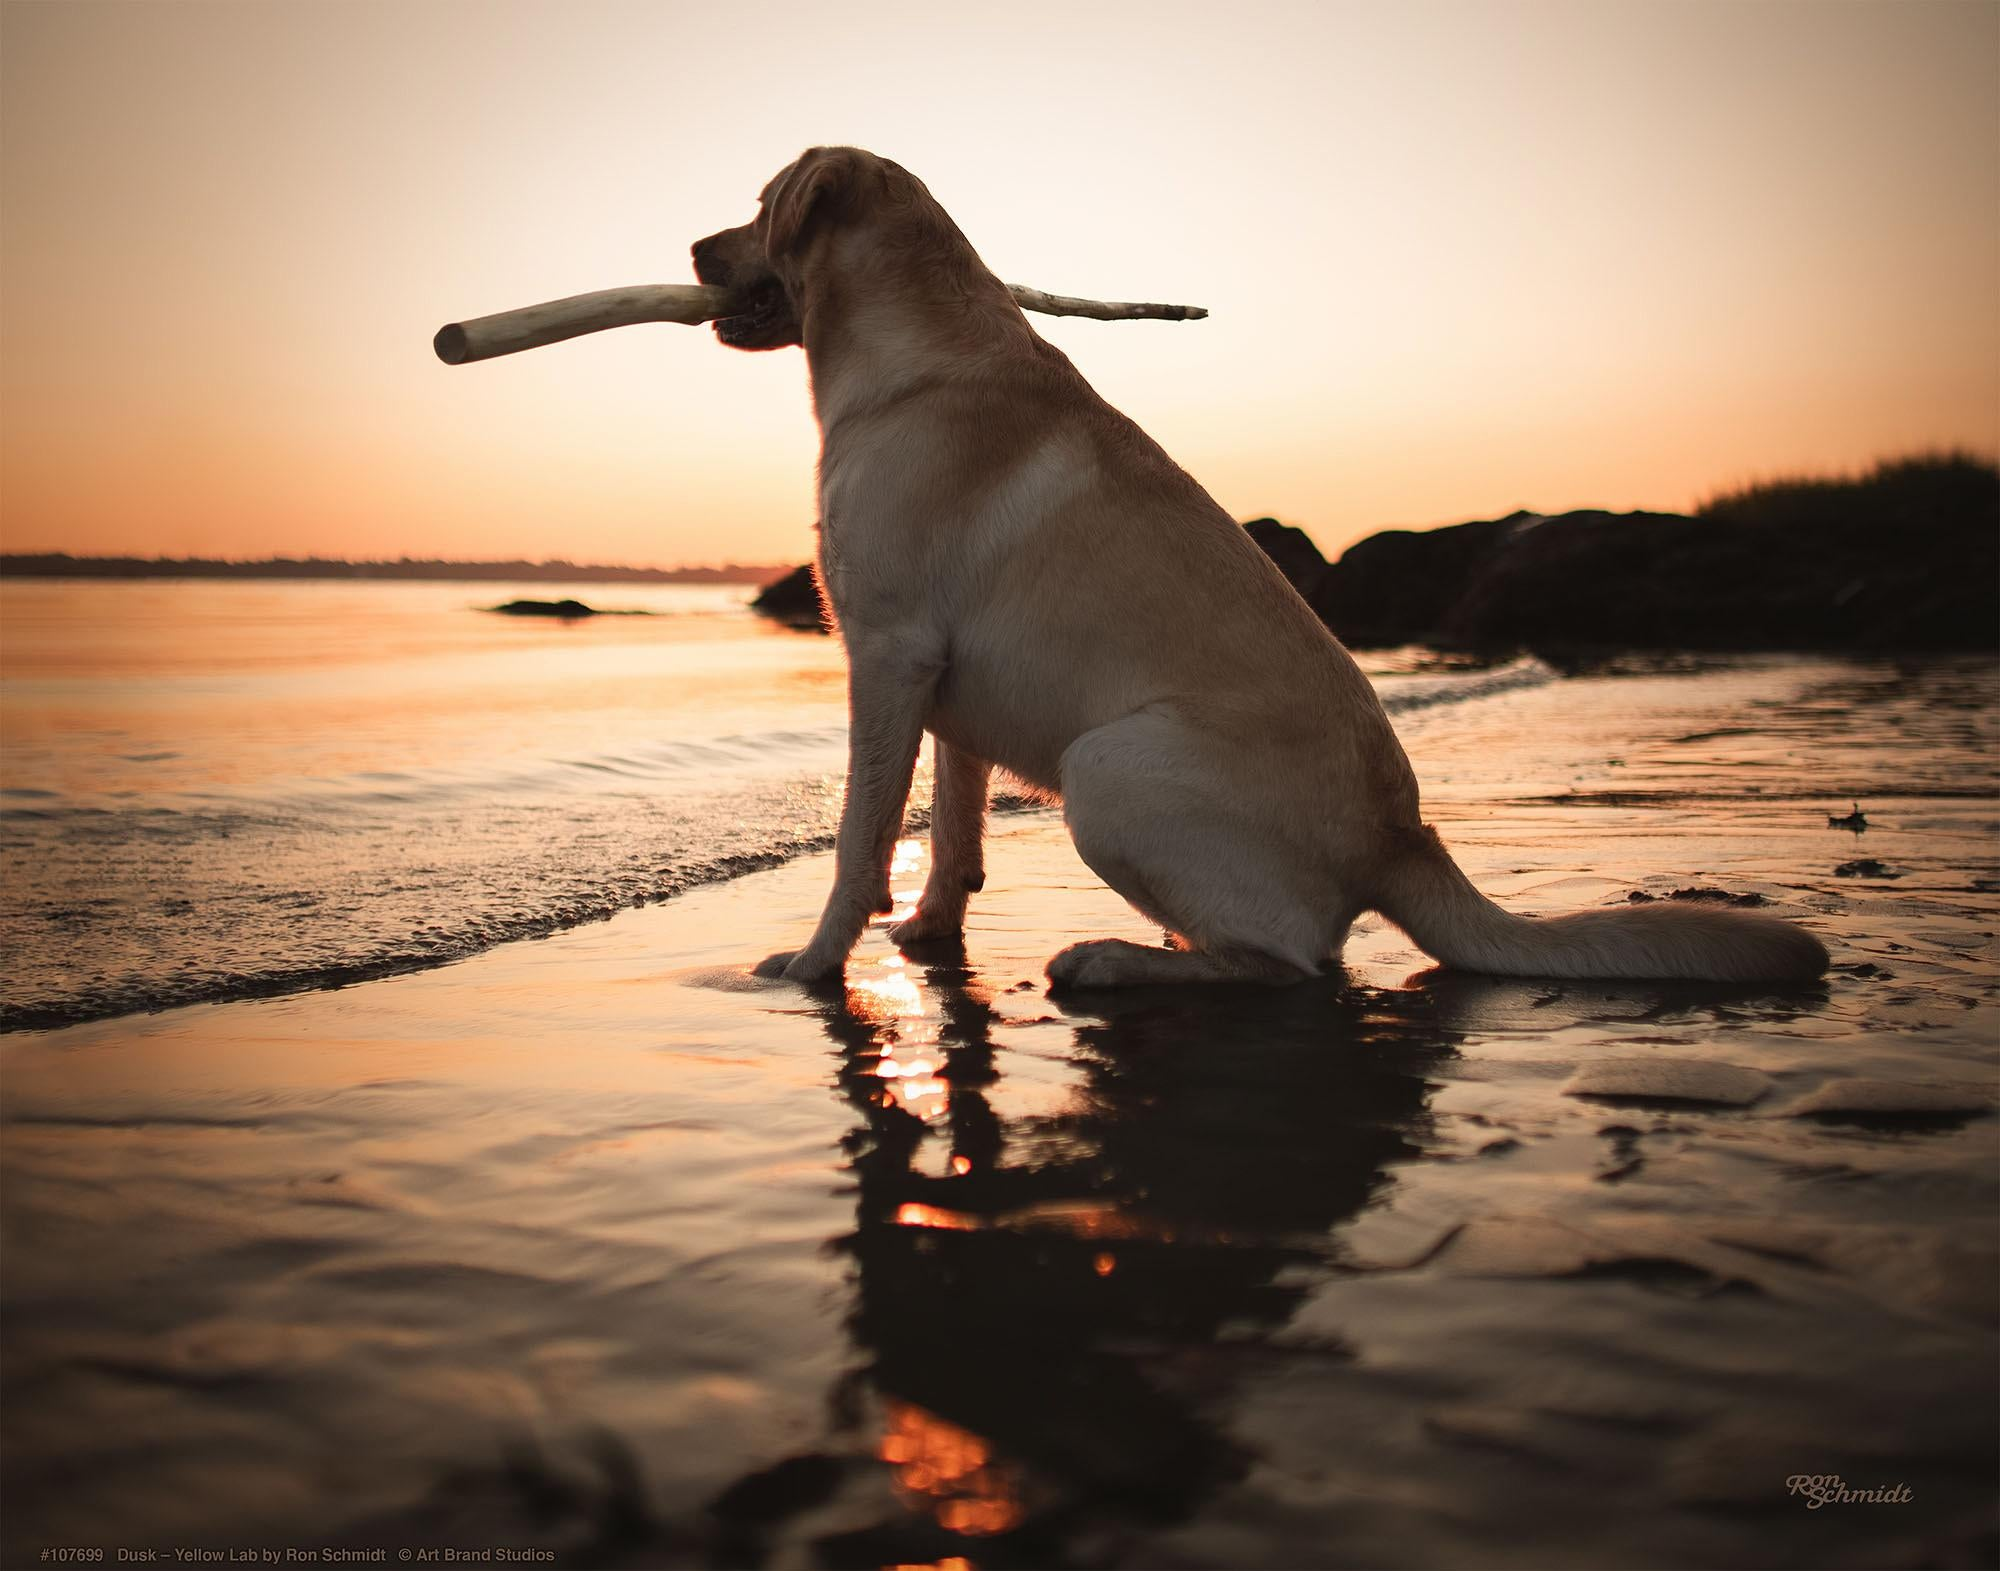 Dusk-Yellow Lab Art Collection